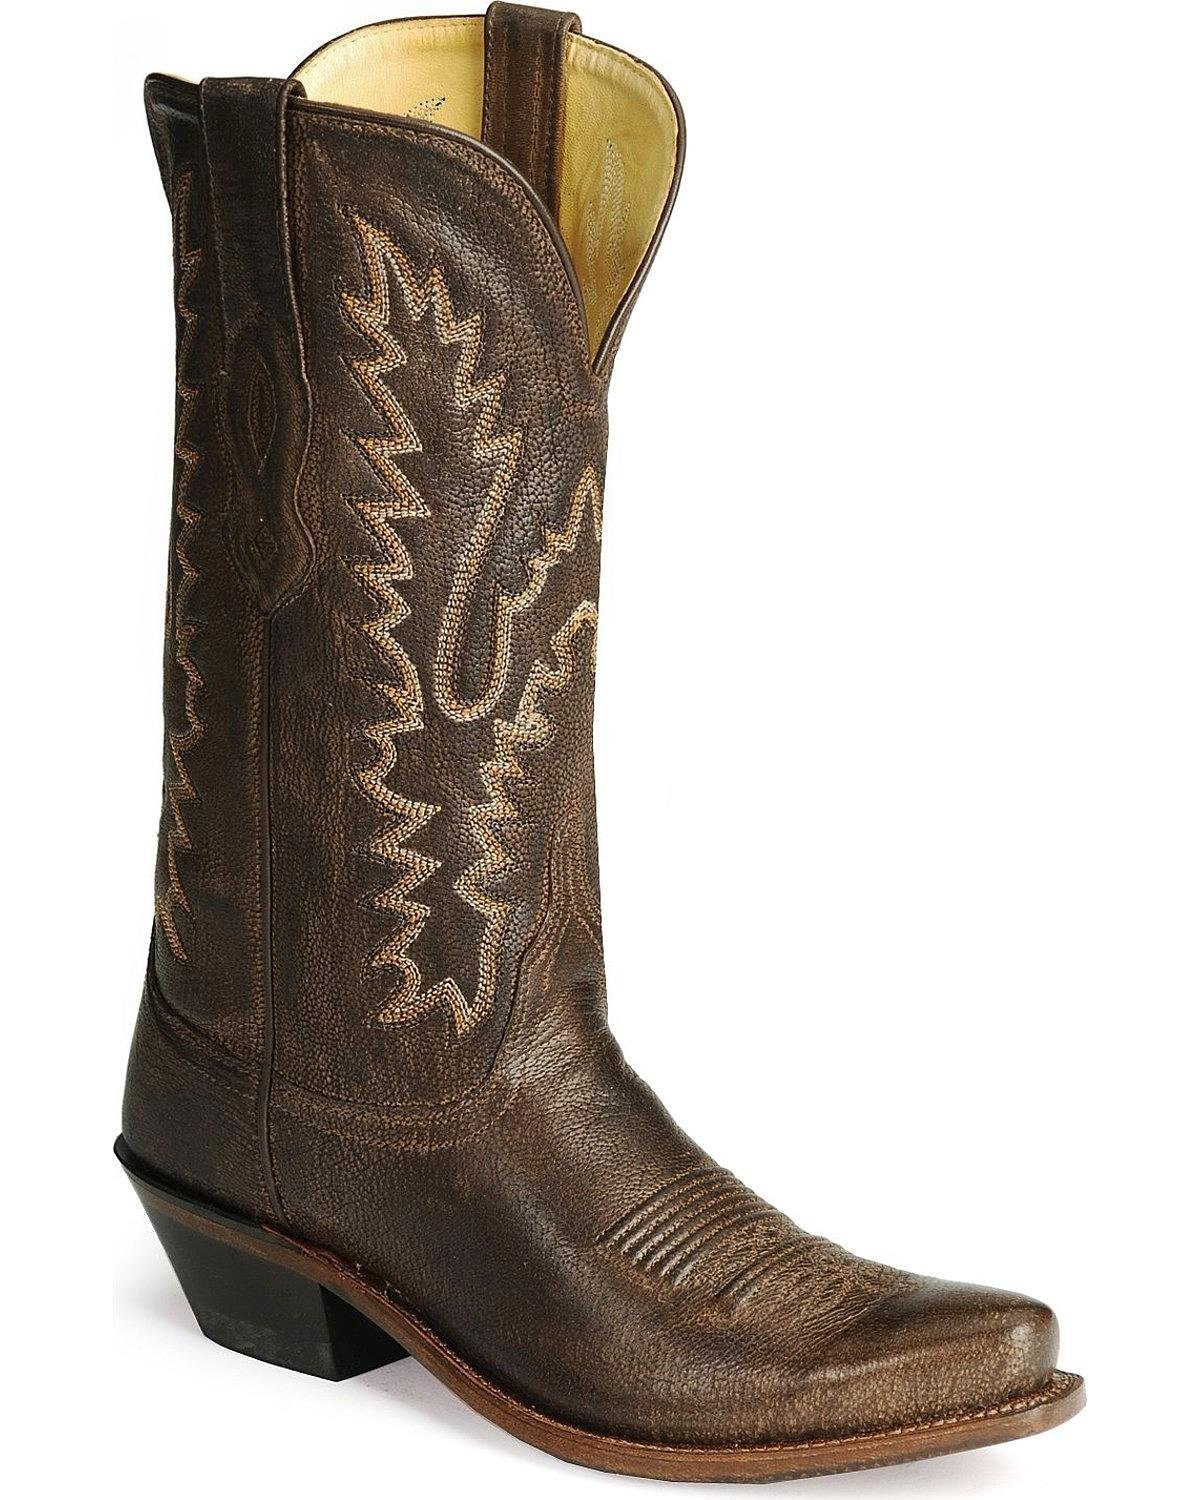 Old West Women's Distressed Leather Cowgirl Boot Snip Toe - Lf1534 B005OR4RVM 6.5 B(M) US|Dark Brown